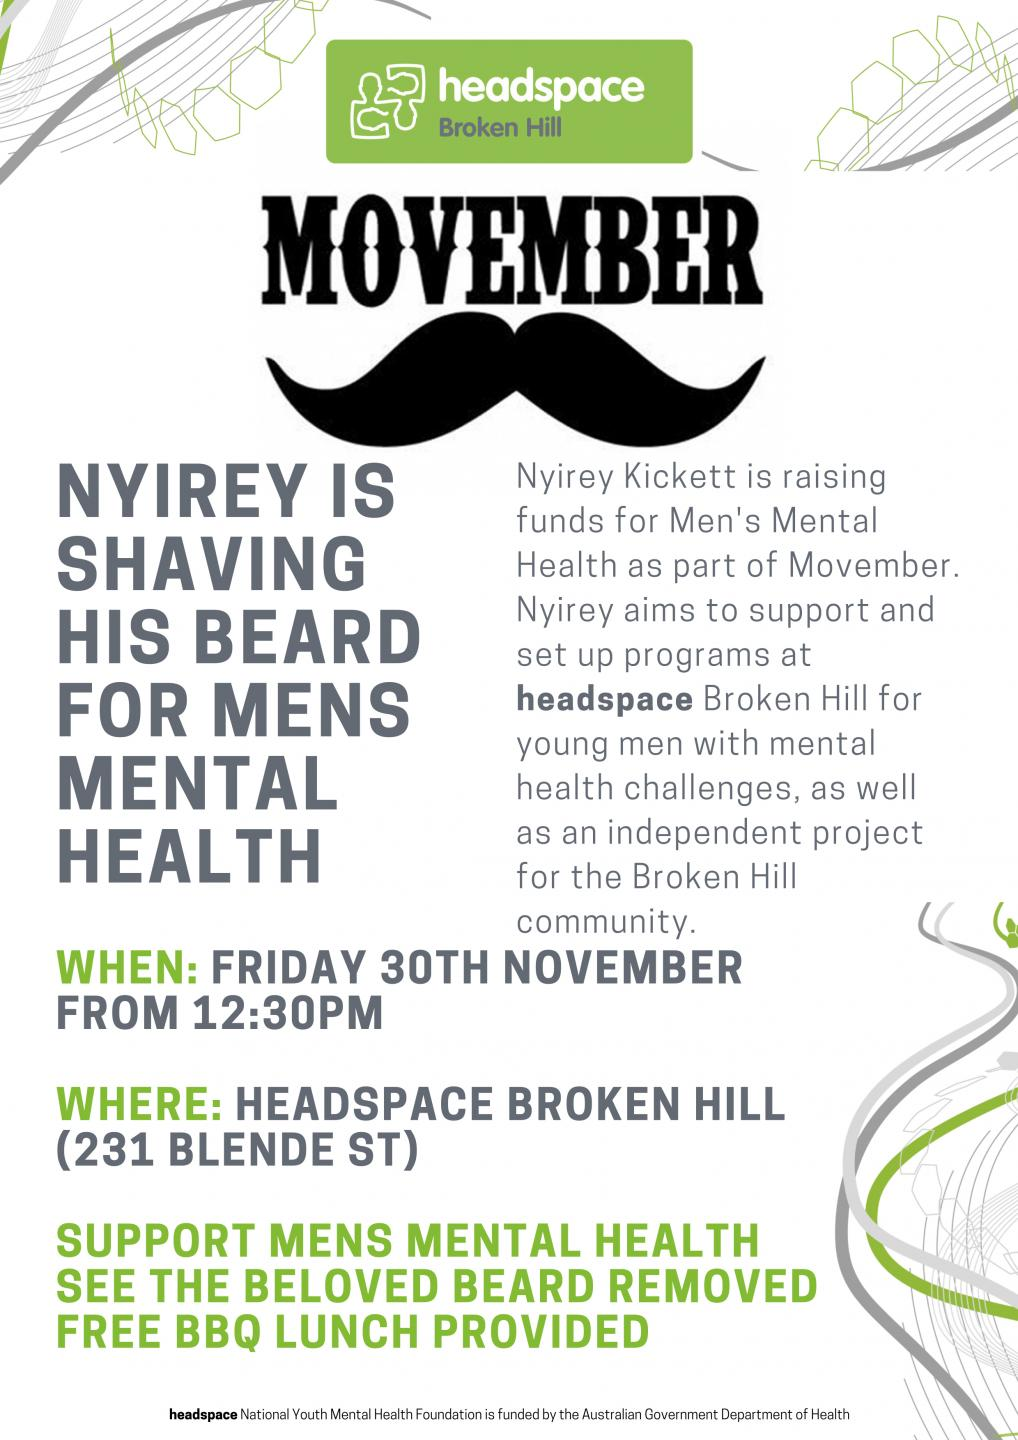 Movember headspace Broken Hill